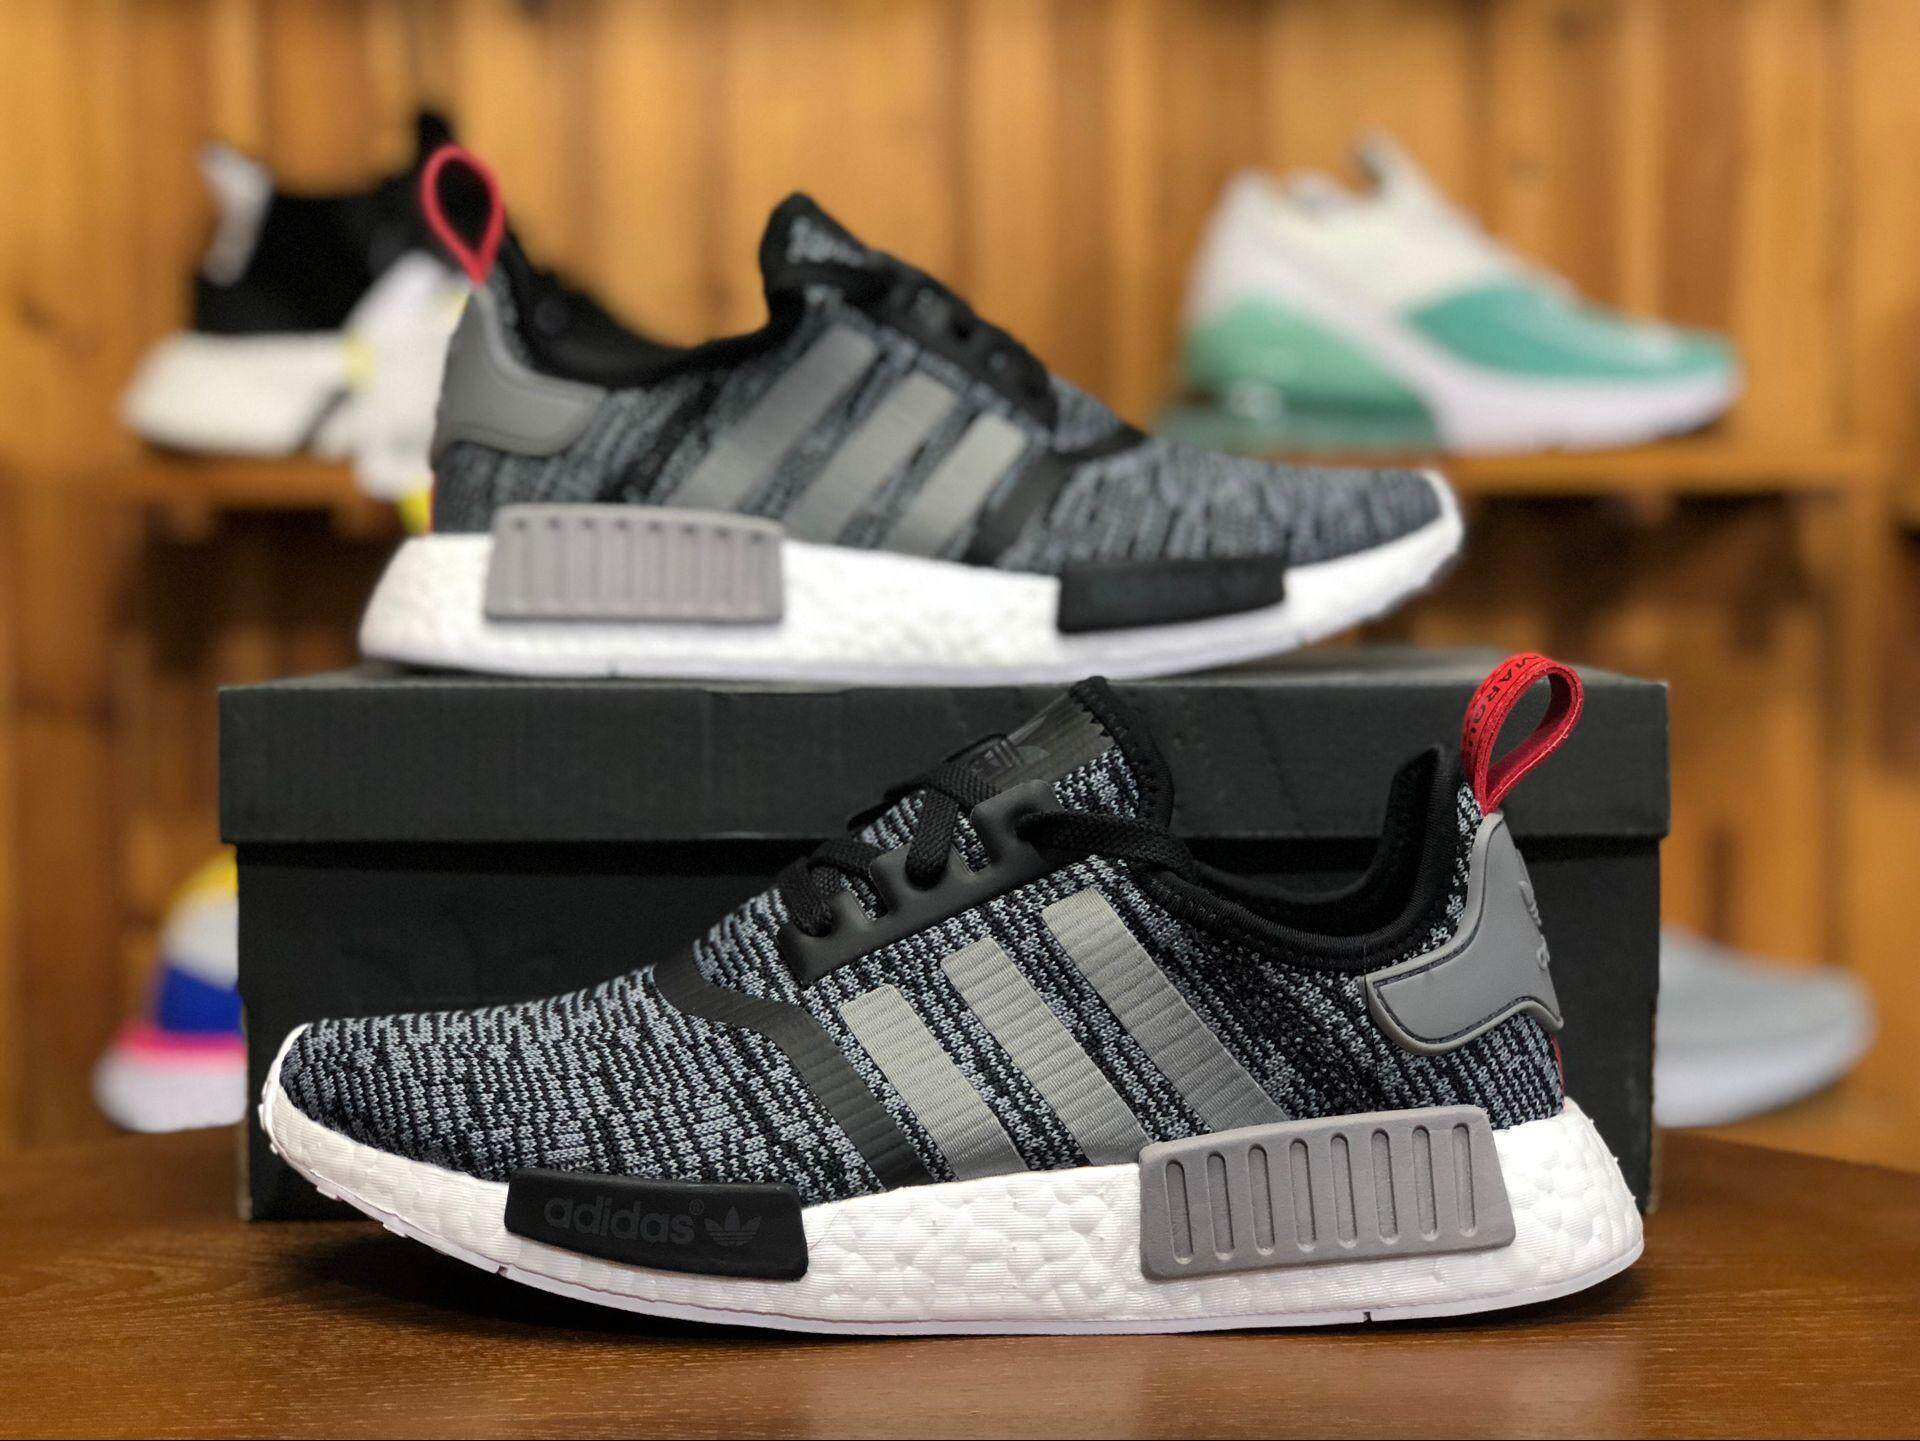 cc346d578 Sale ADIDA 2018 NMD  R1 Runner Nomad Glitch Camo Pack Black BB2884 Women  and Men Sneaker